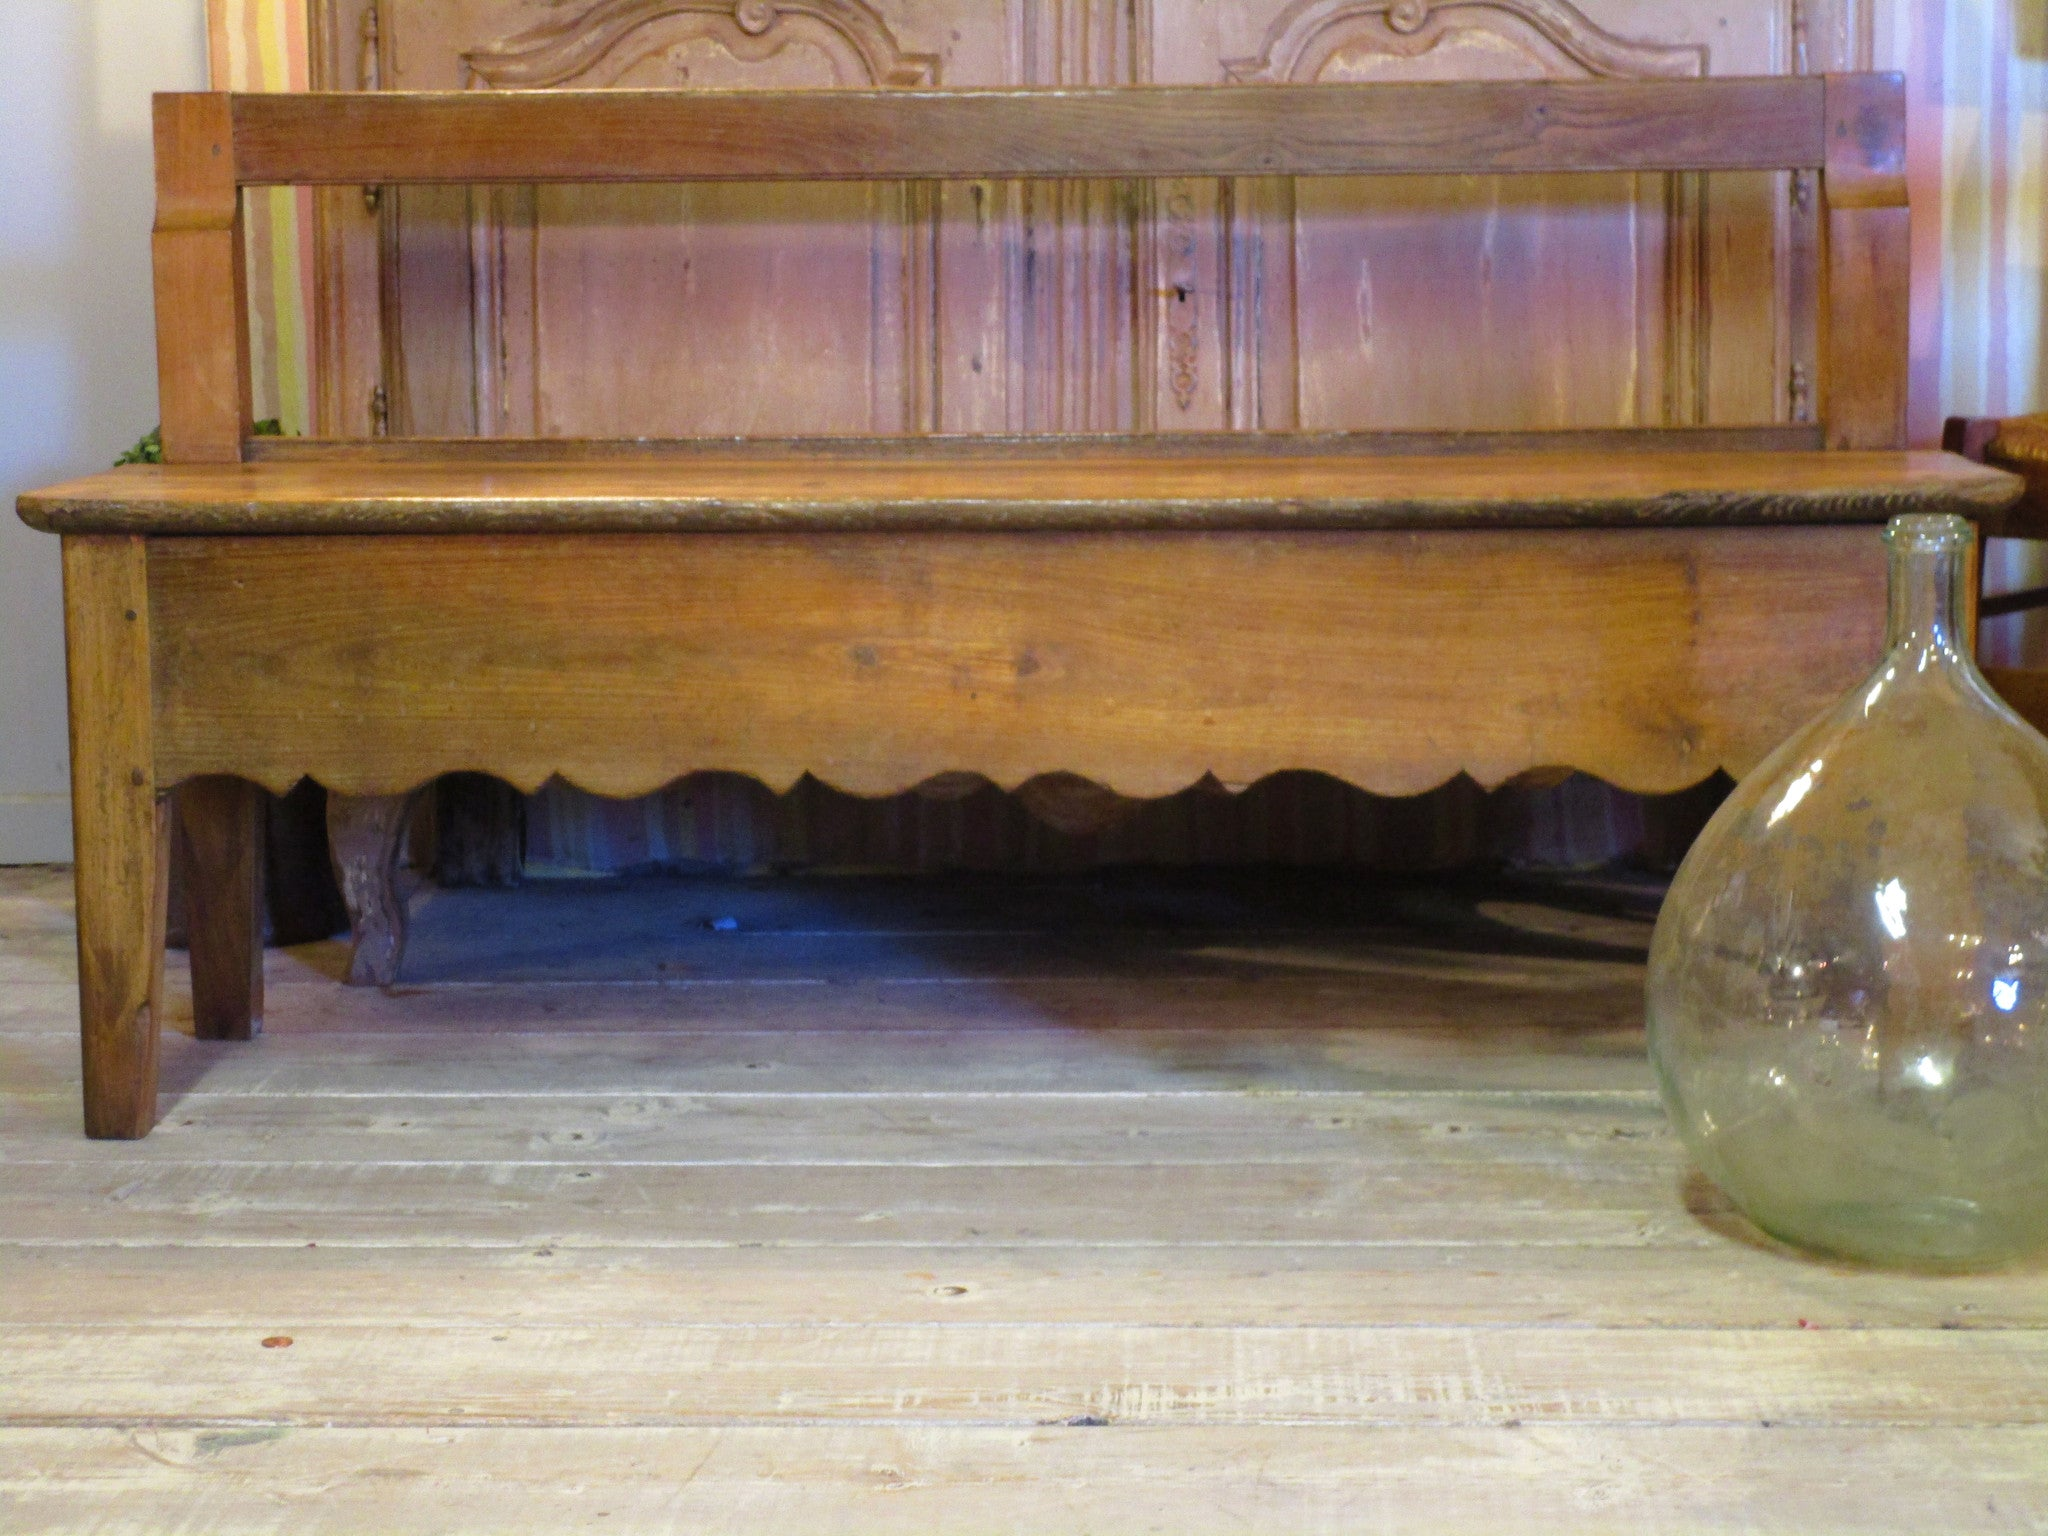 19th century french oak and cherry wood bench seat farmhouse decor